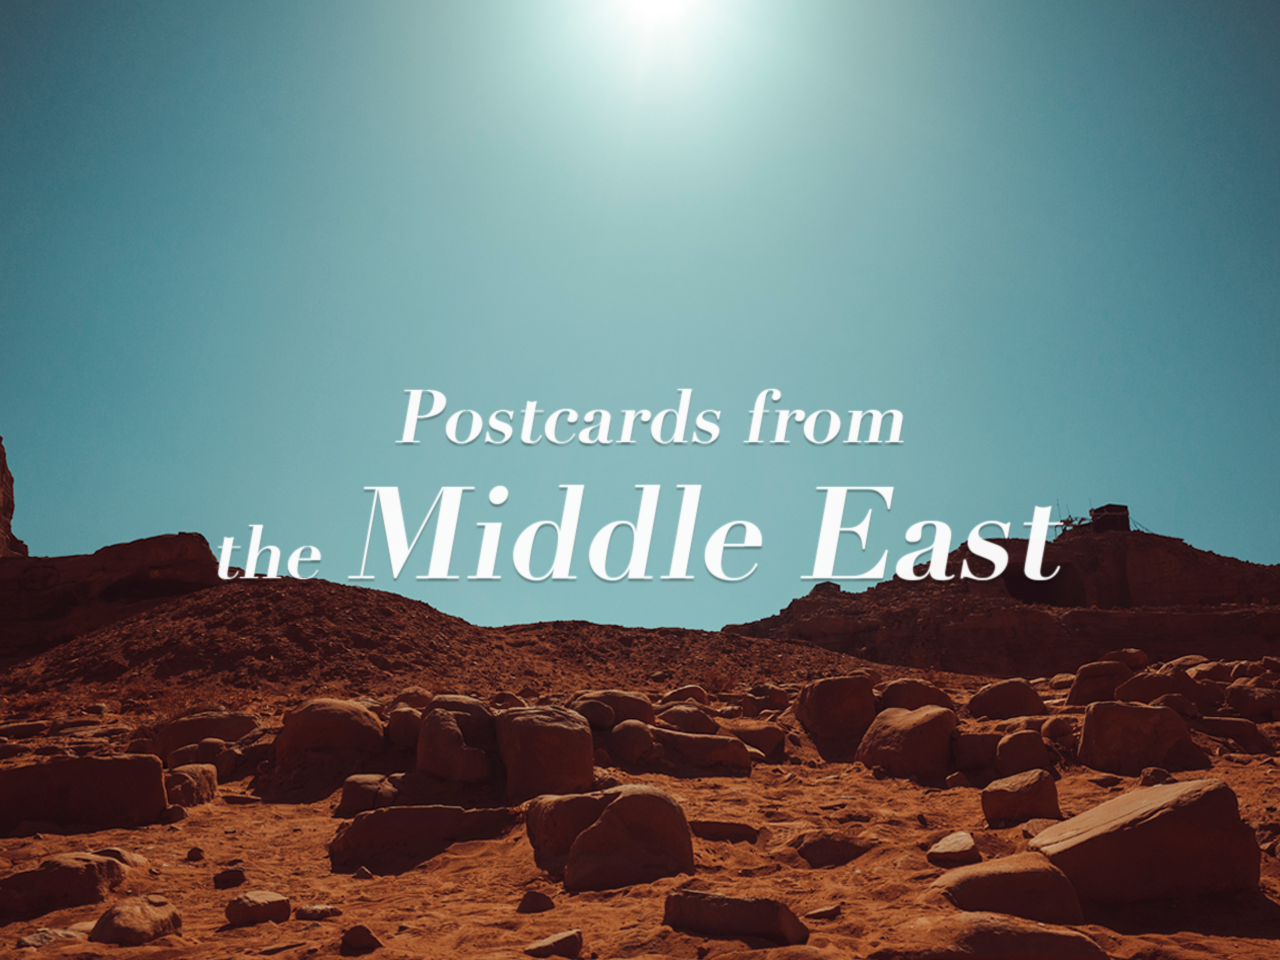 postcards from the middle east_thumbnail_website